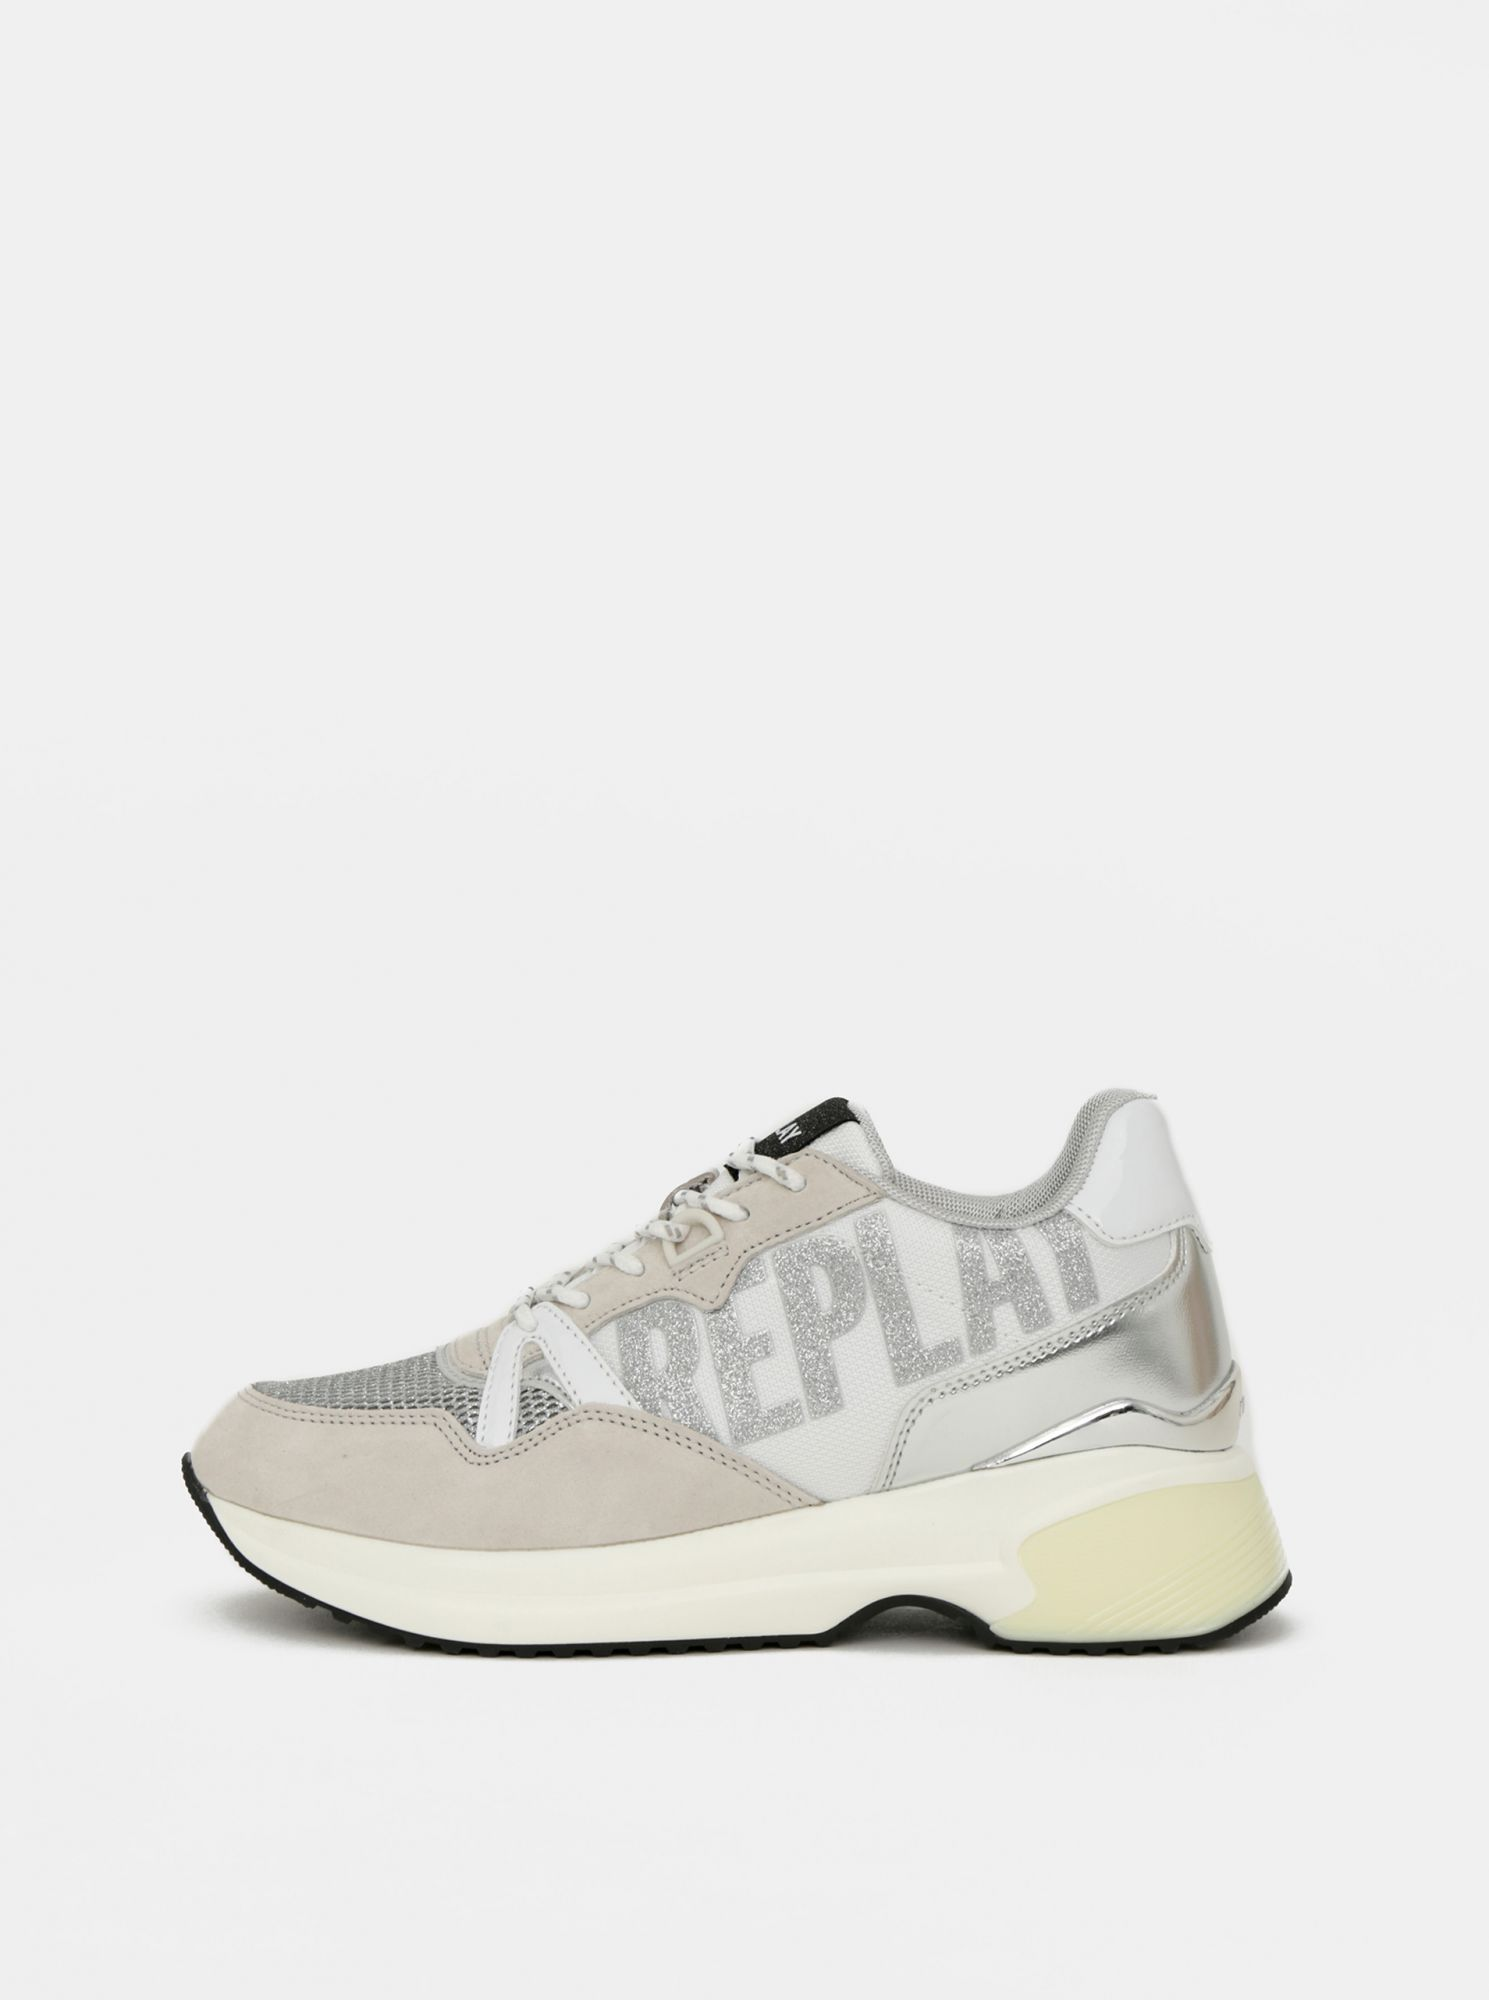 Light gray women's sneakers with suede Replay details